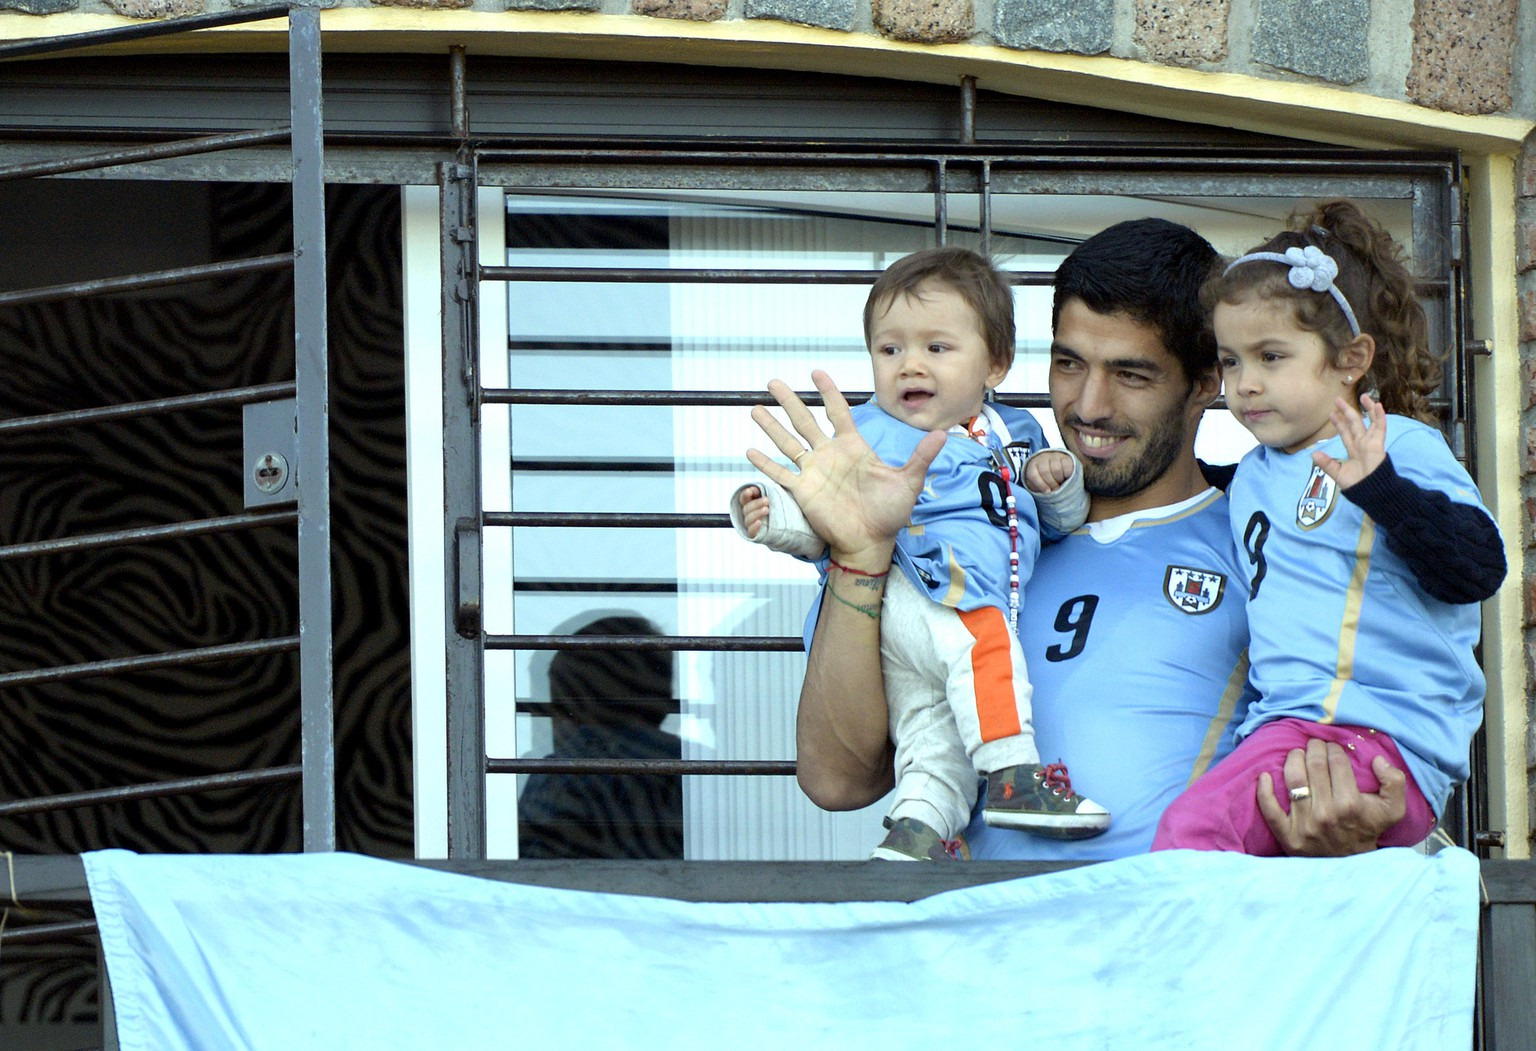 Uruguay's soccer player Luis Suarez, center, with his children Benjamin, left, and Delfina, waves to fans from his home, before the start of his team's World Cup round 16 match with Colombia, on the outskirts of Montevideo, Uruguay, Saturday, June 28, 2014. FIFA banned Suarez from all football activities for four months for biting an opponent at the World Cup, a punishment that rules him out of the rest of the tournament. (AP Photo/Matilde Campodonico)